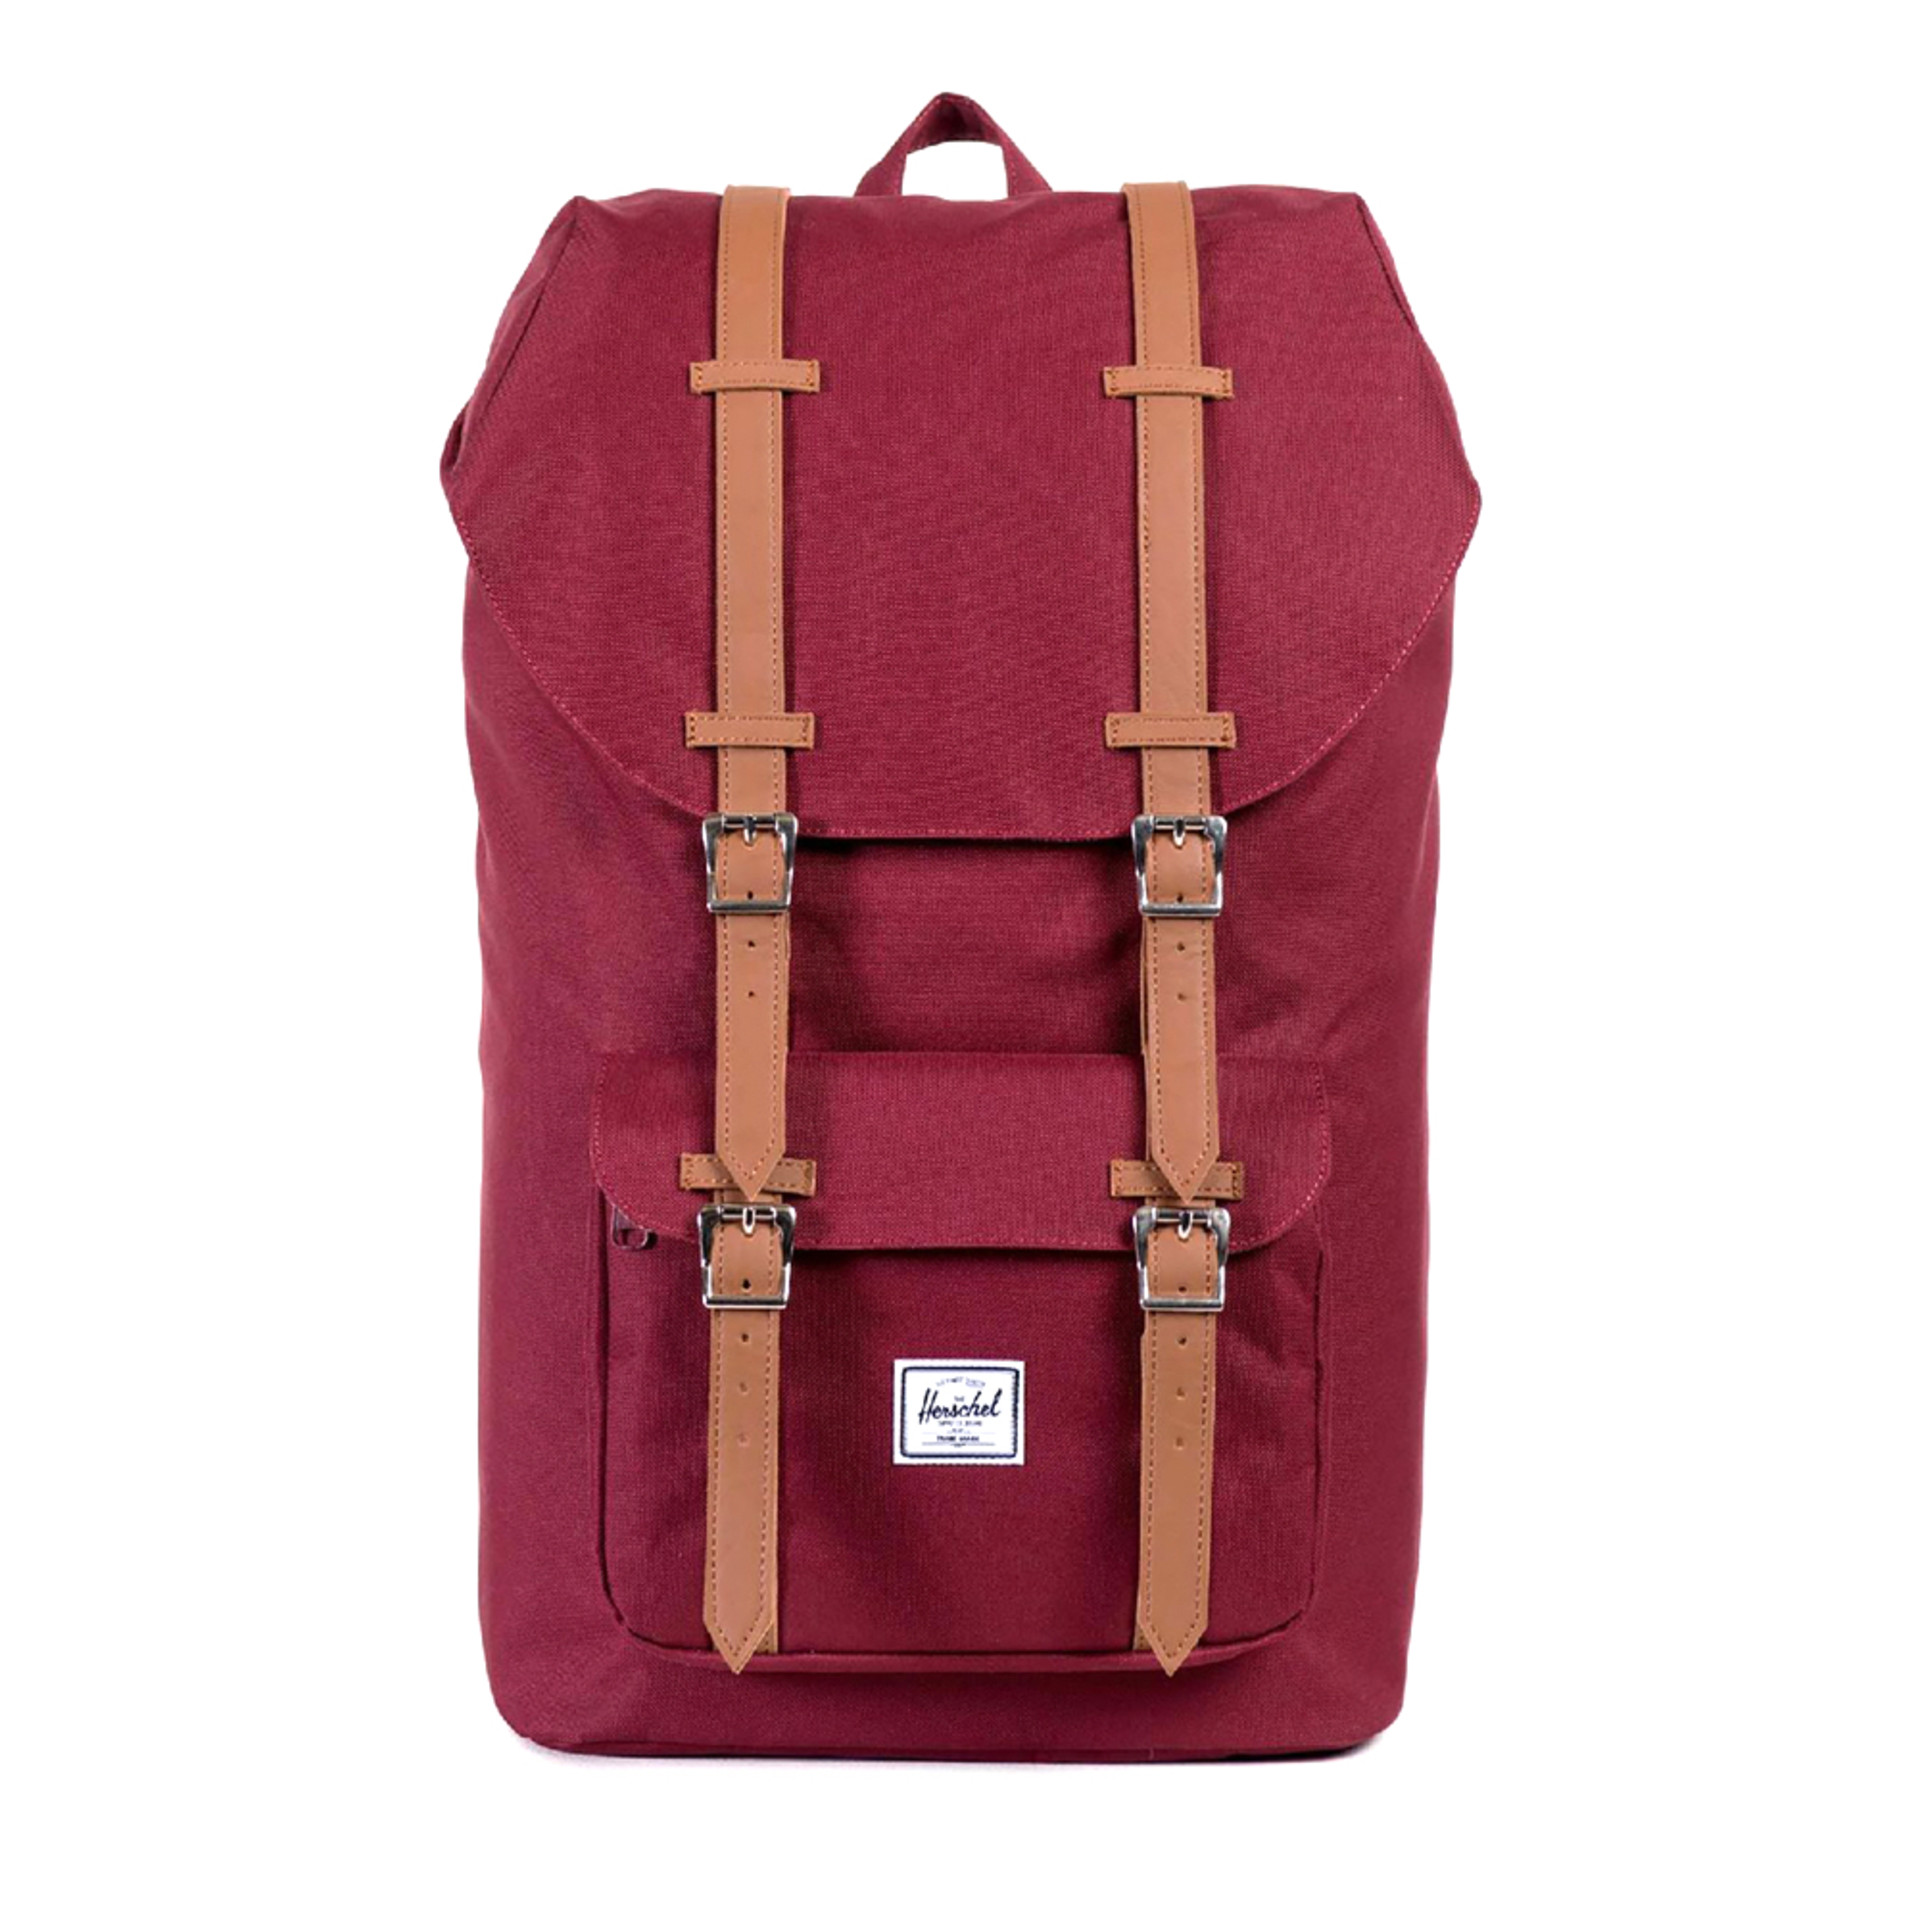 Herschel Little America Backpack – Wine